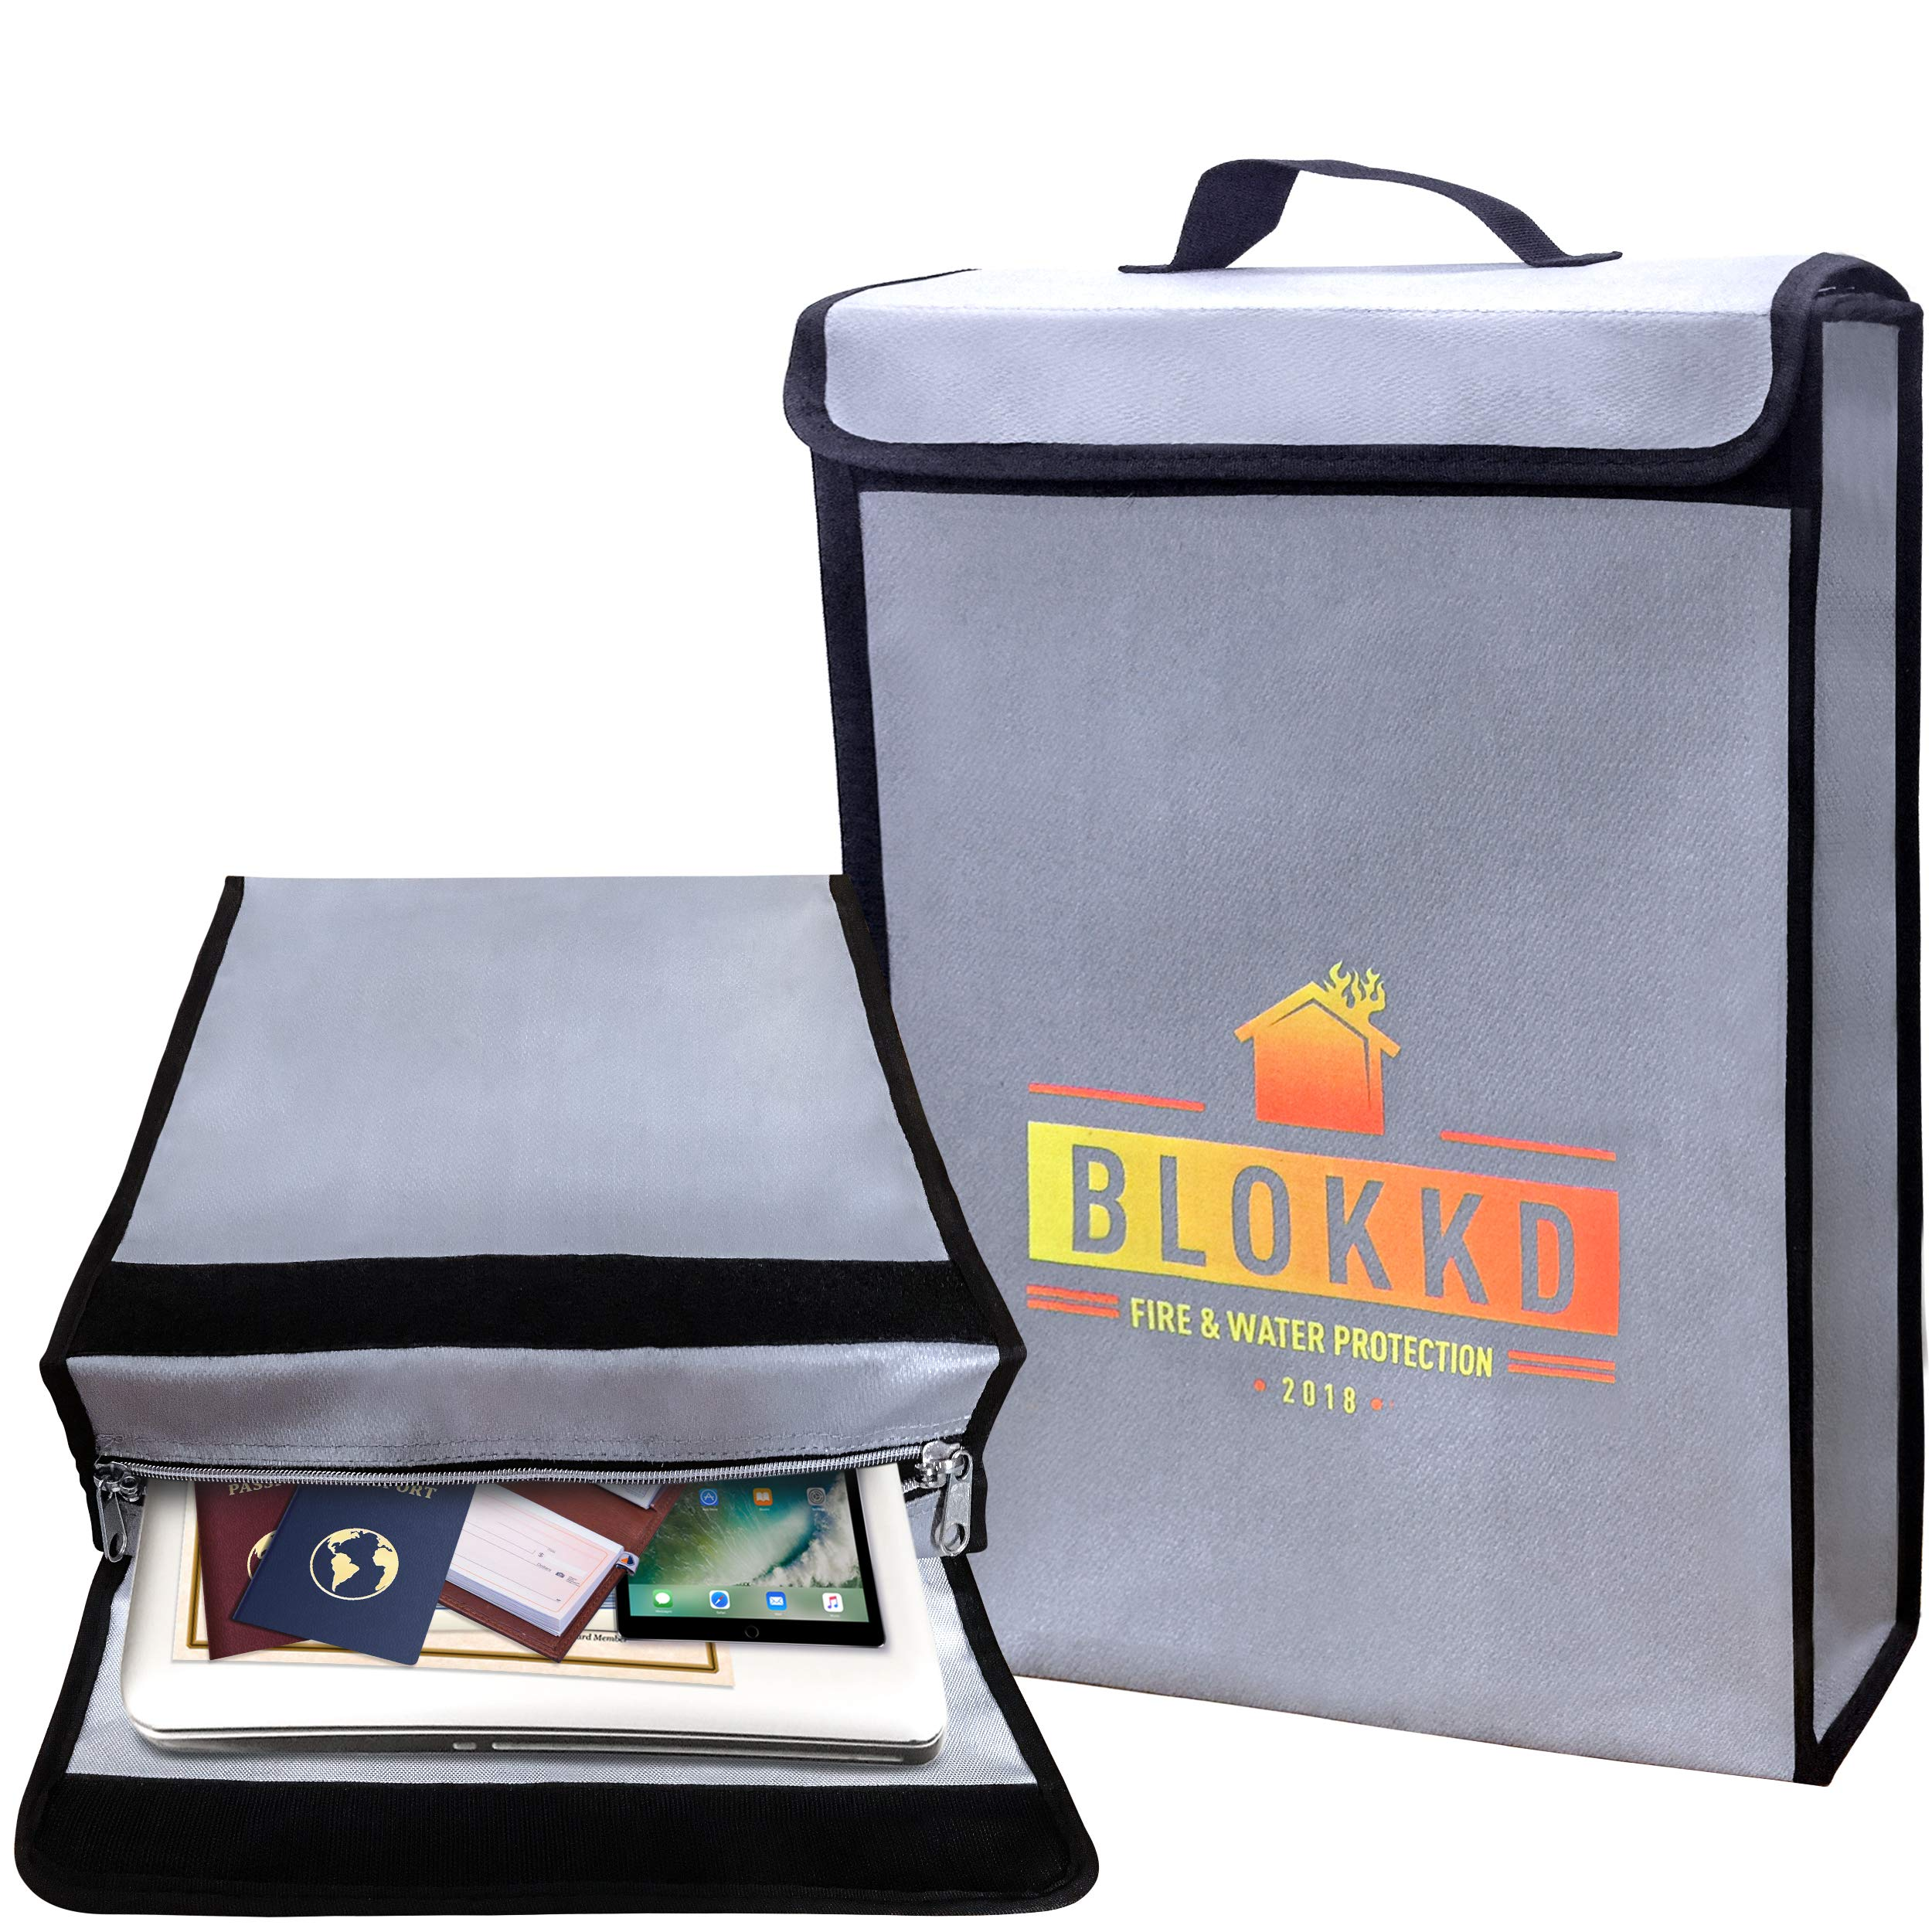 BLOKKD Fireproof Document Bag, Fire Box for Documents, Waterproof Safe, Fireproof Lock Box for Home, Papers, Money, Files, Jewelry, Valuables - 16 x 11.5 x 3 inches (Gray)